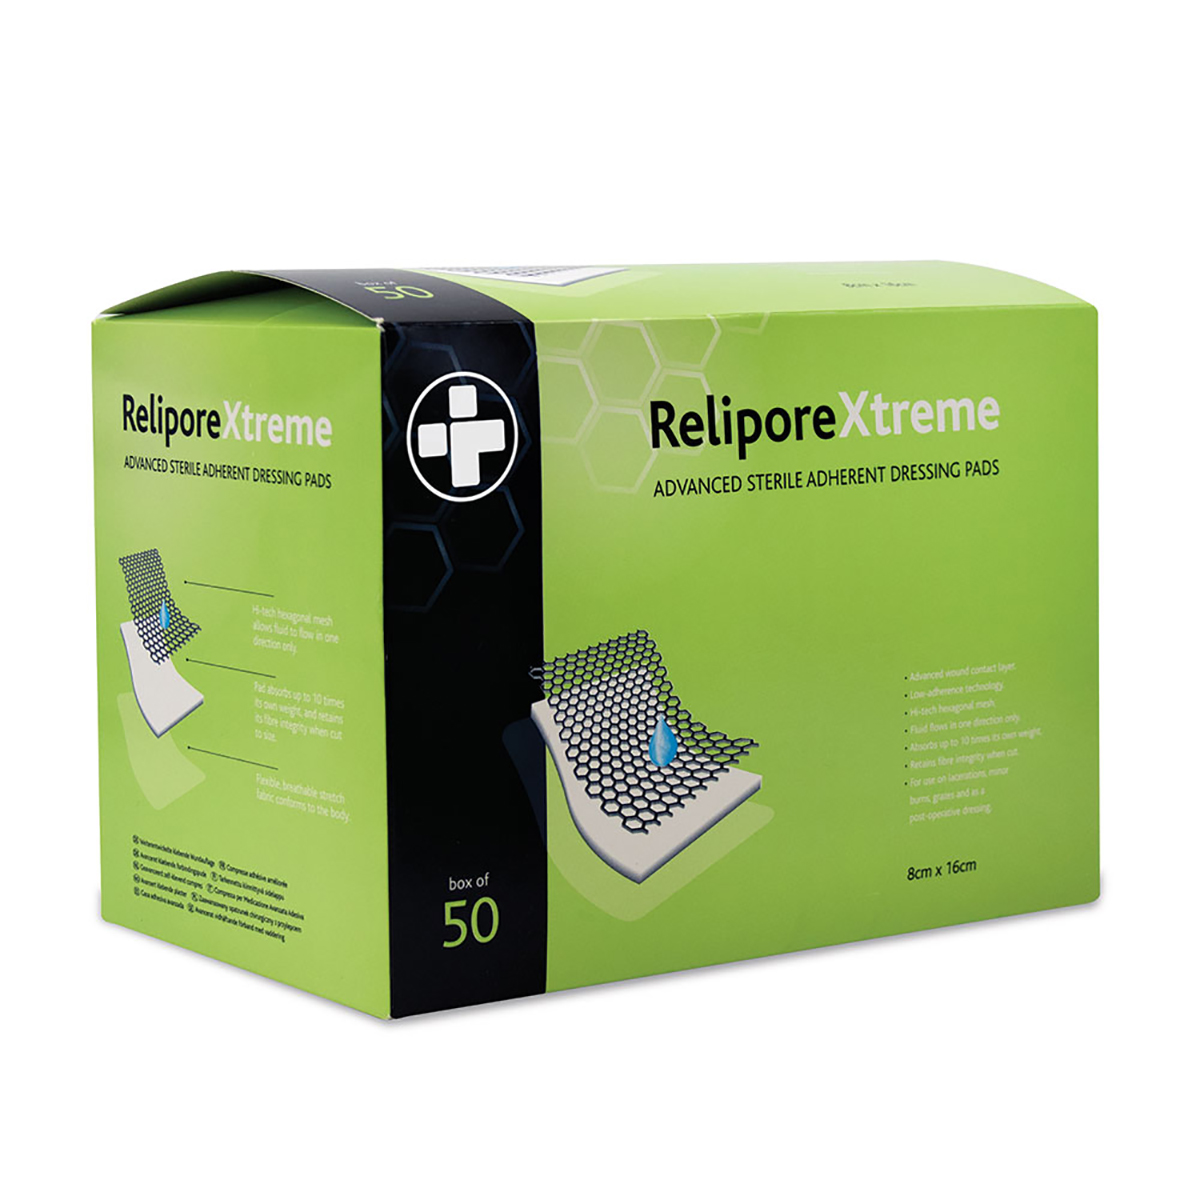 Pack of 50 8cm x 16 cm Reliporextreme Dressing Pad